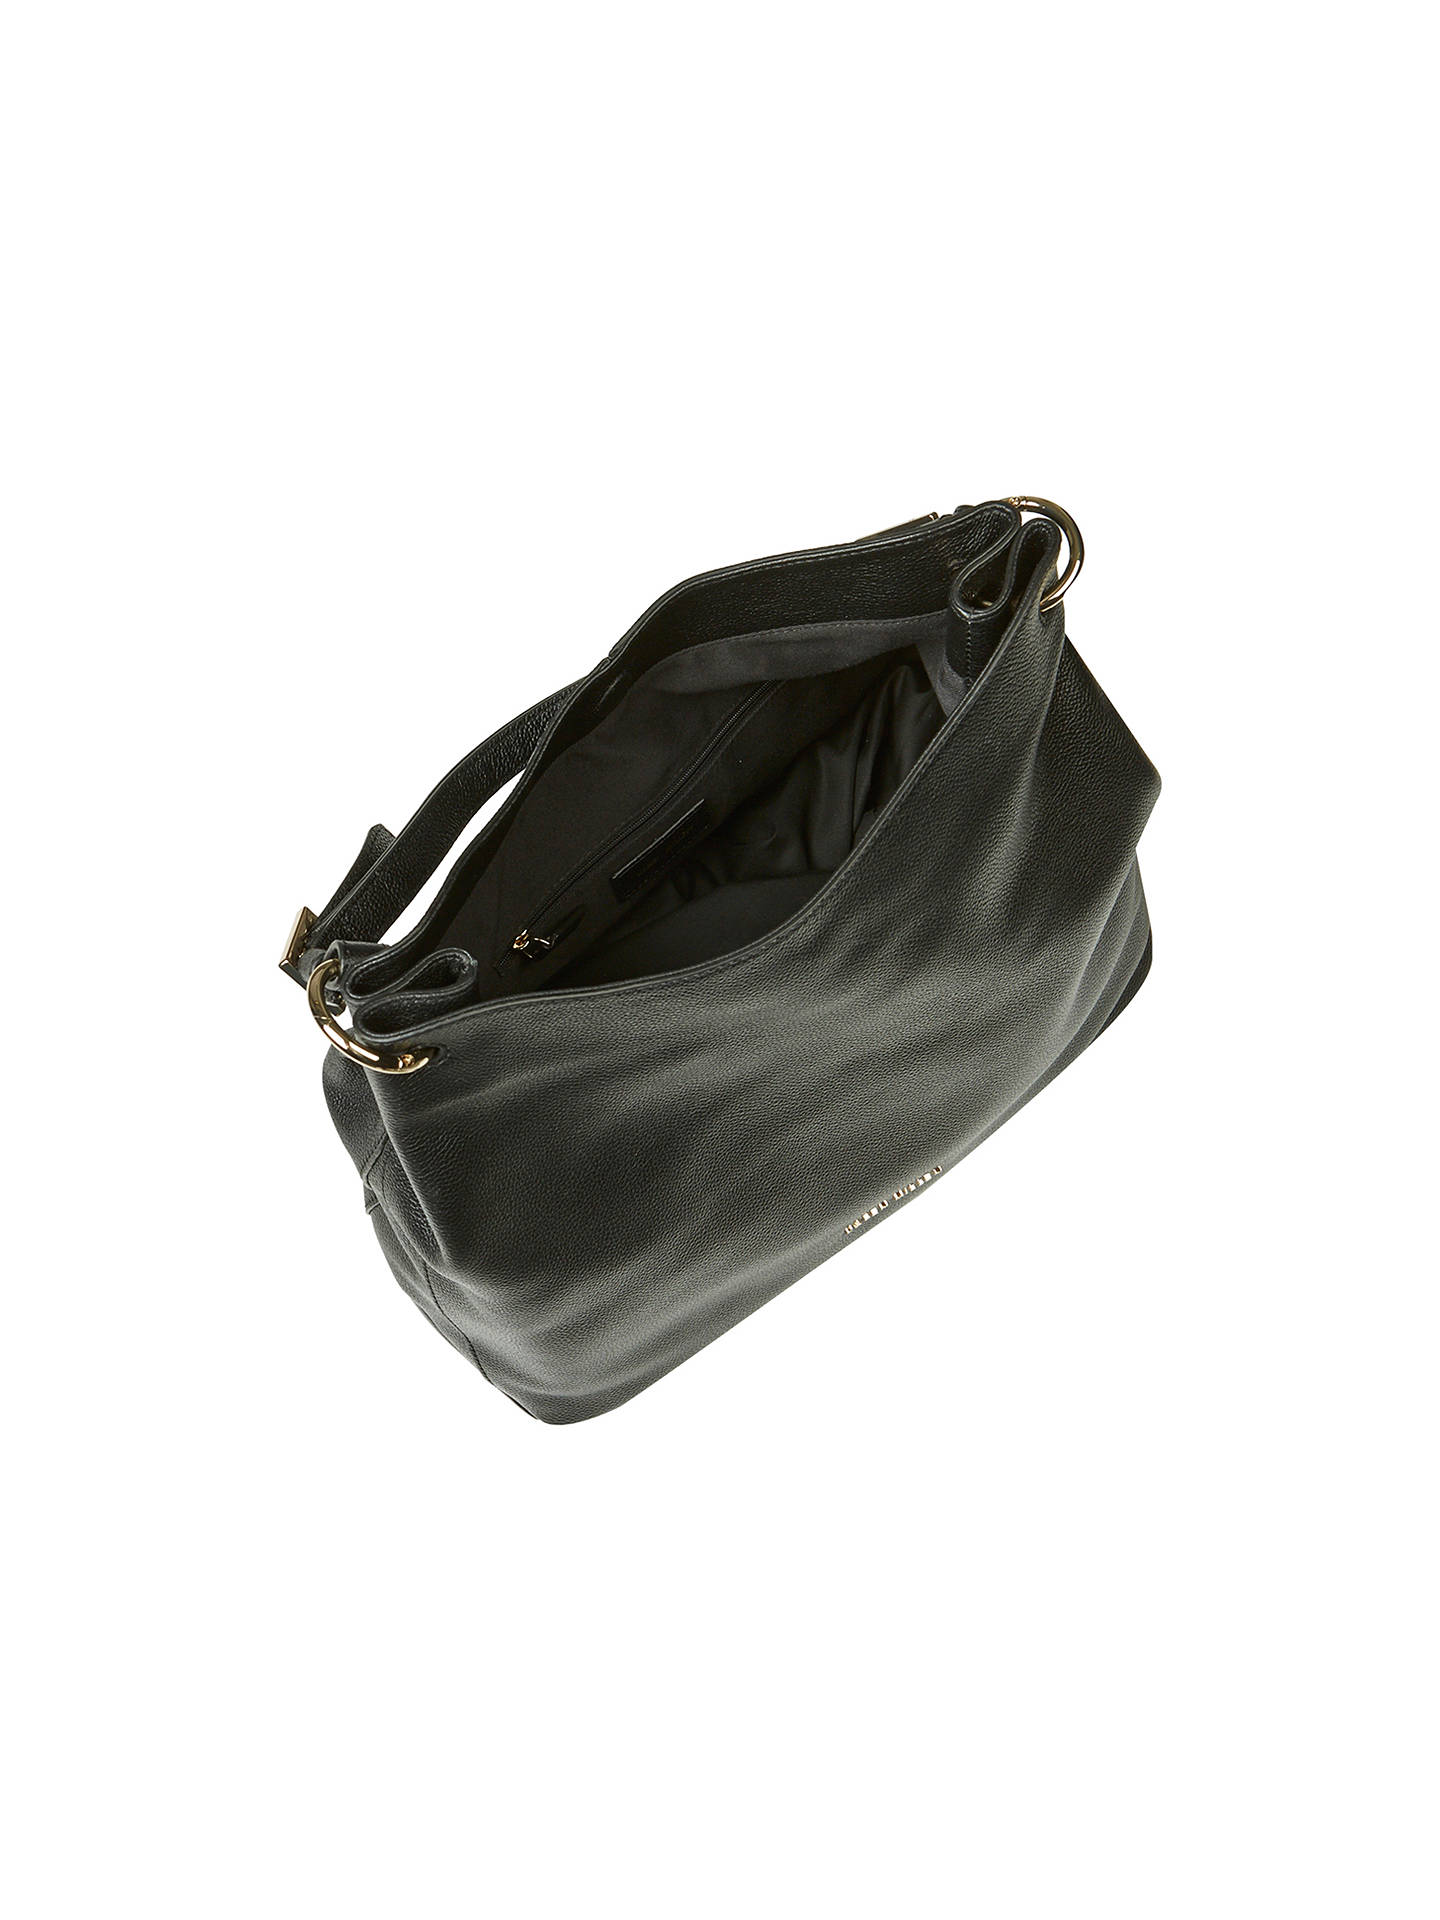 28279453e1 ... Buy Karen Millen Soft Leather Sling Bag, Black Online at johnlewis.com  ...